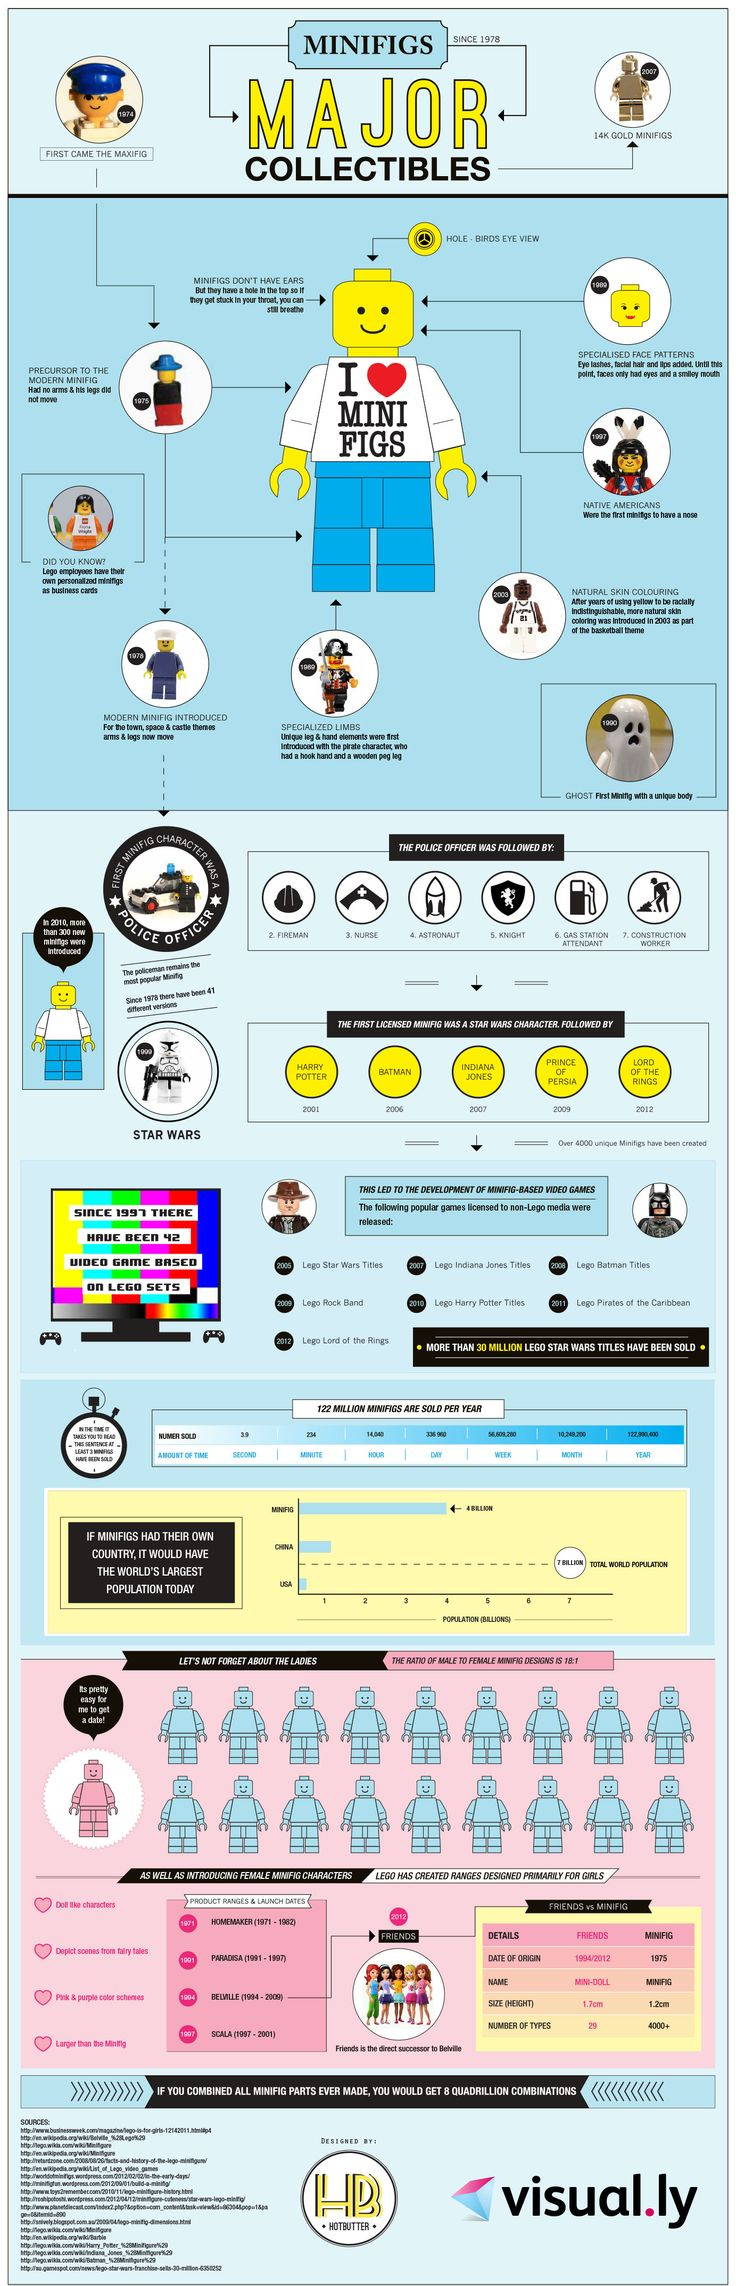 This infographic is about the collectible toys known as LEGO minifigs (mini figures).